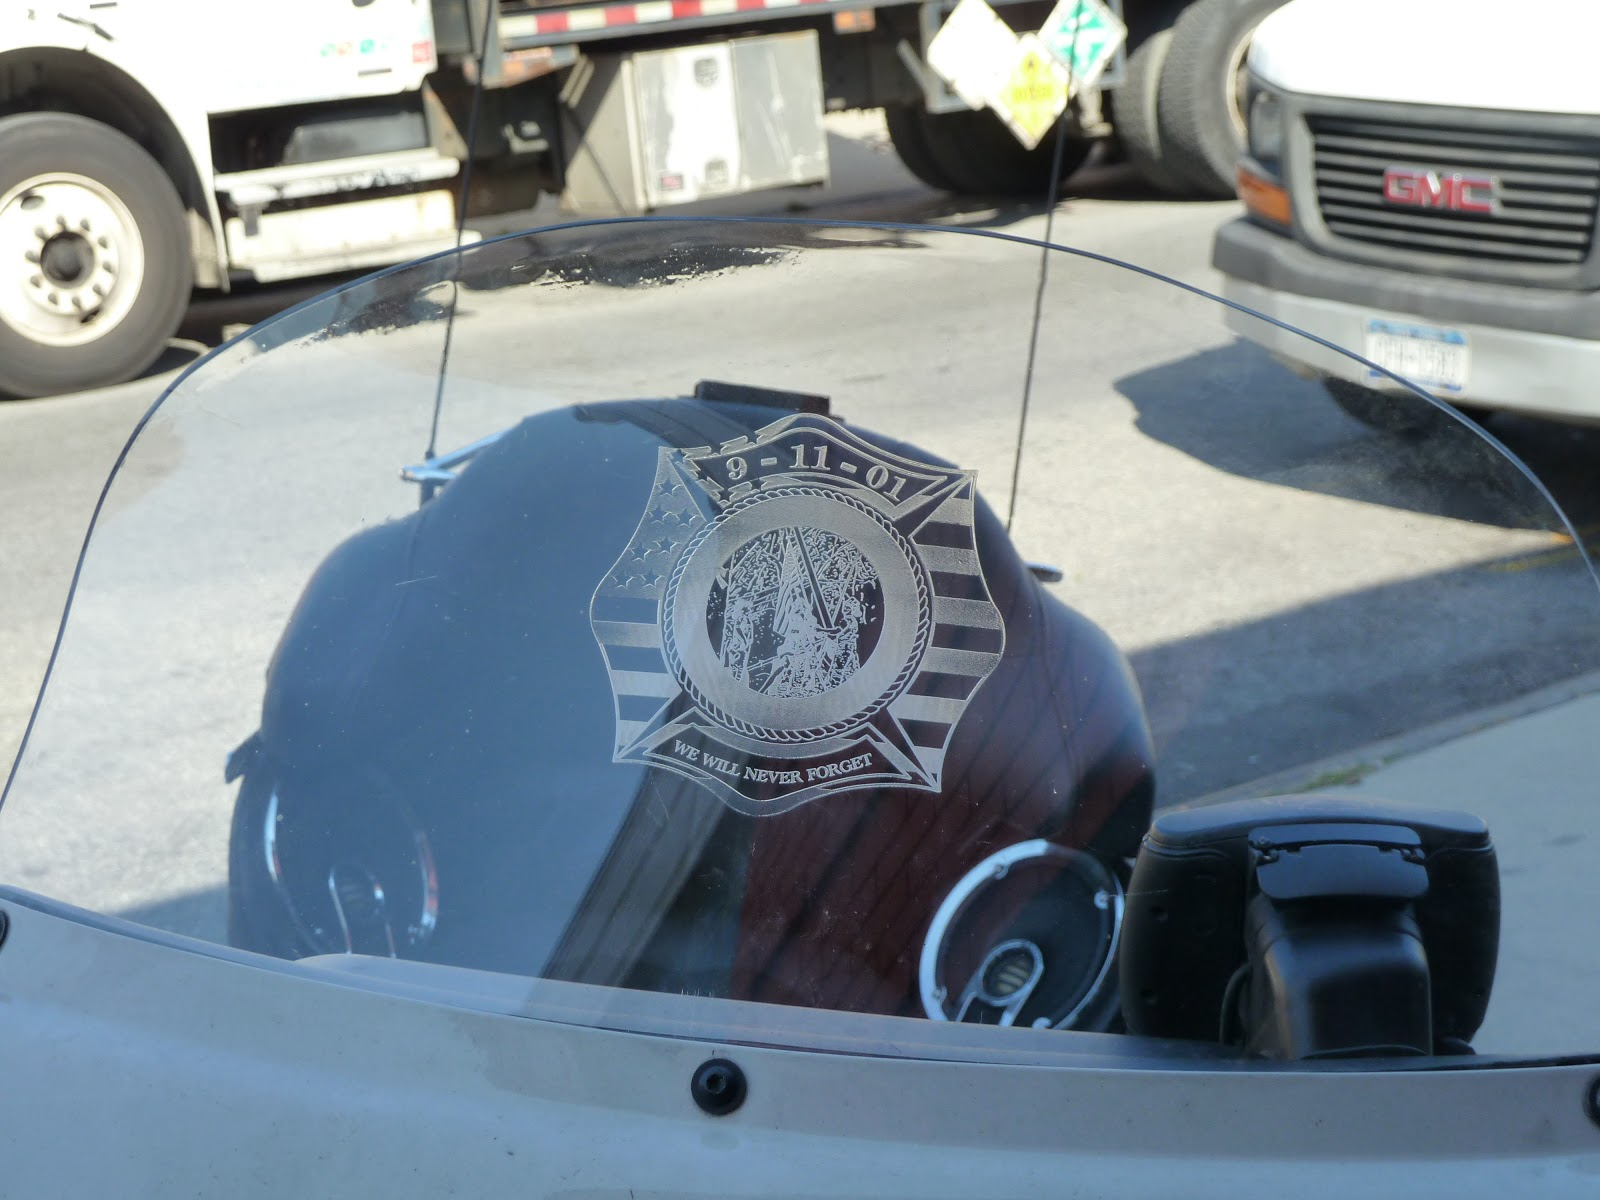 Find any Red Knights Firefighters Motorcycle Club chapters website ...